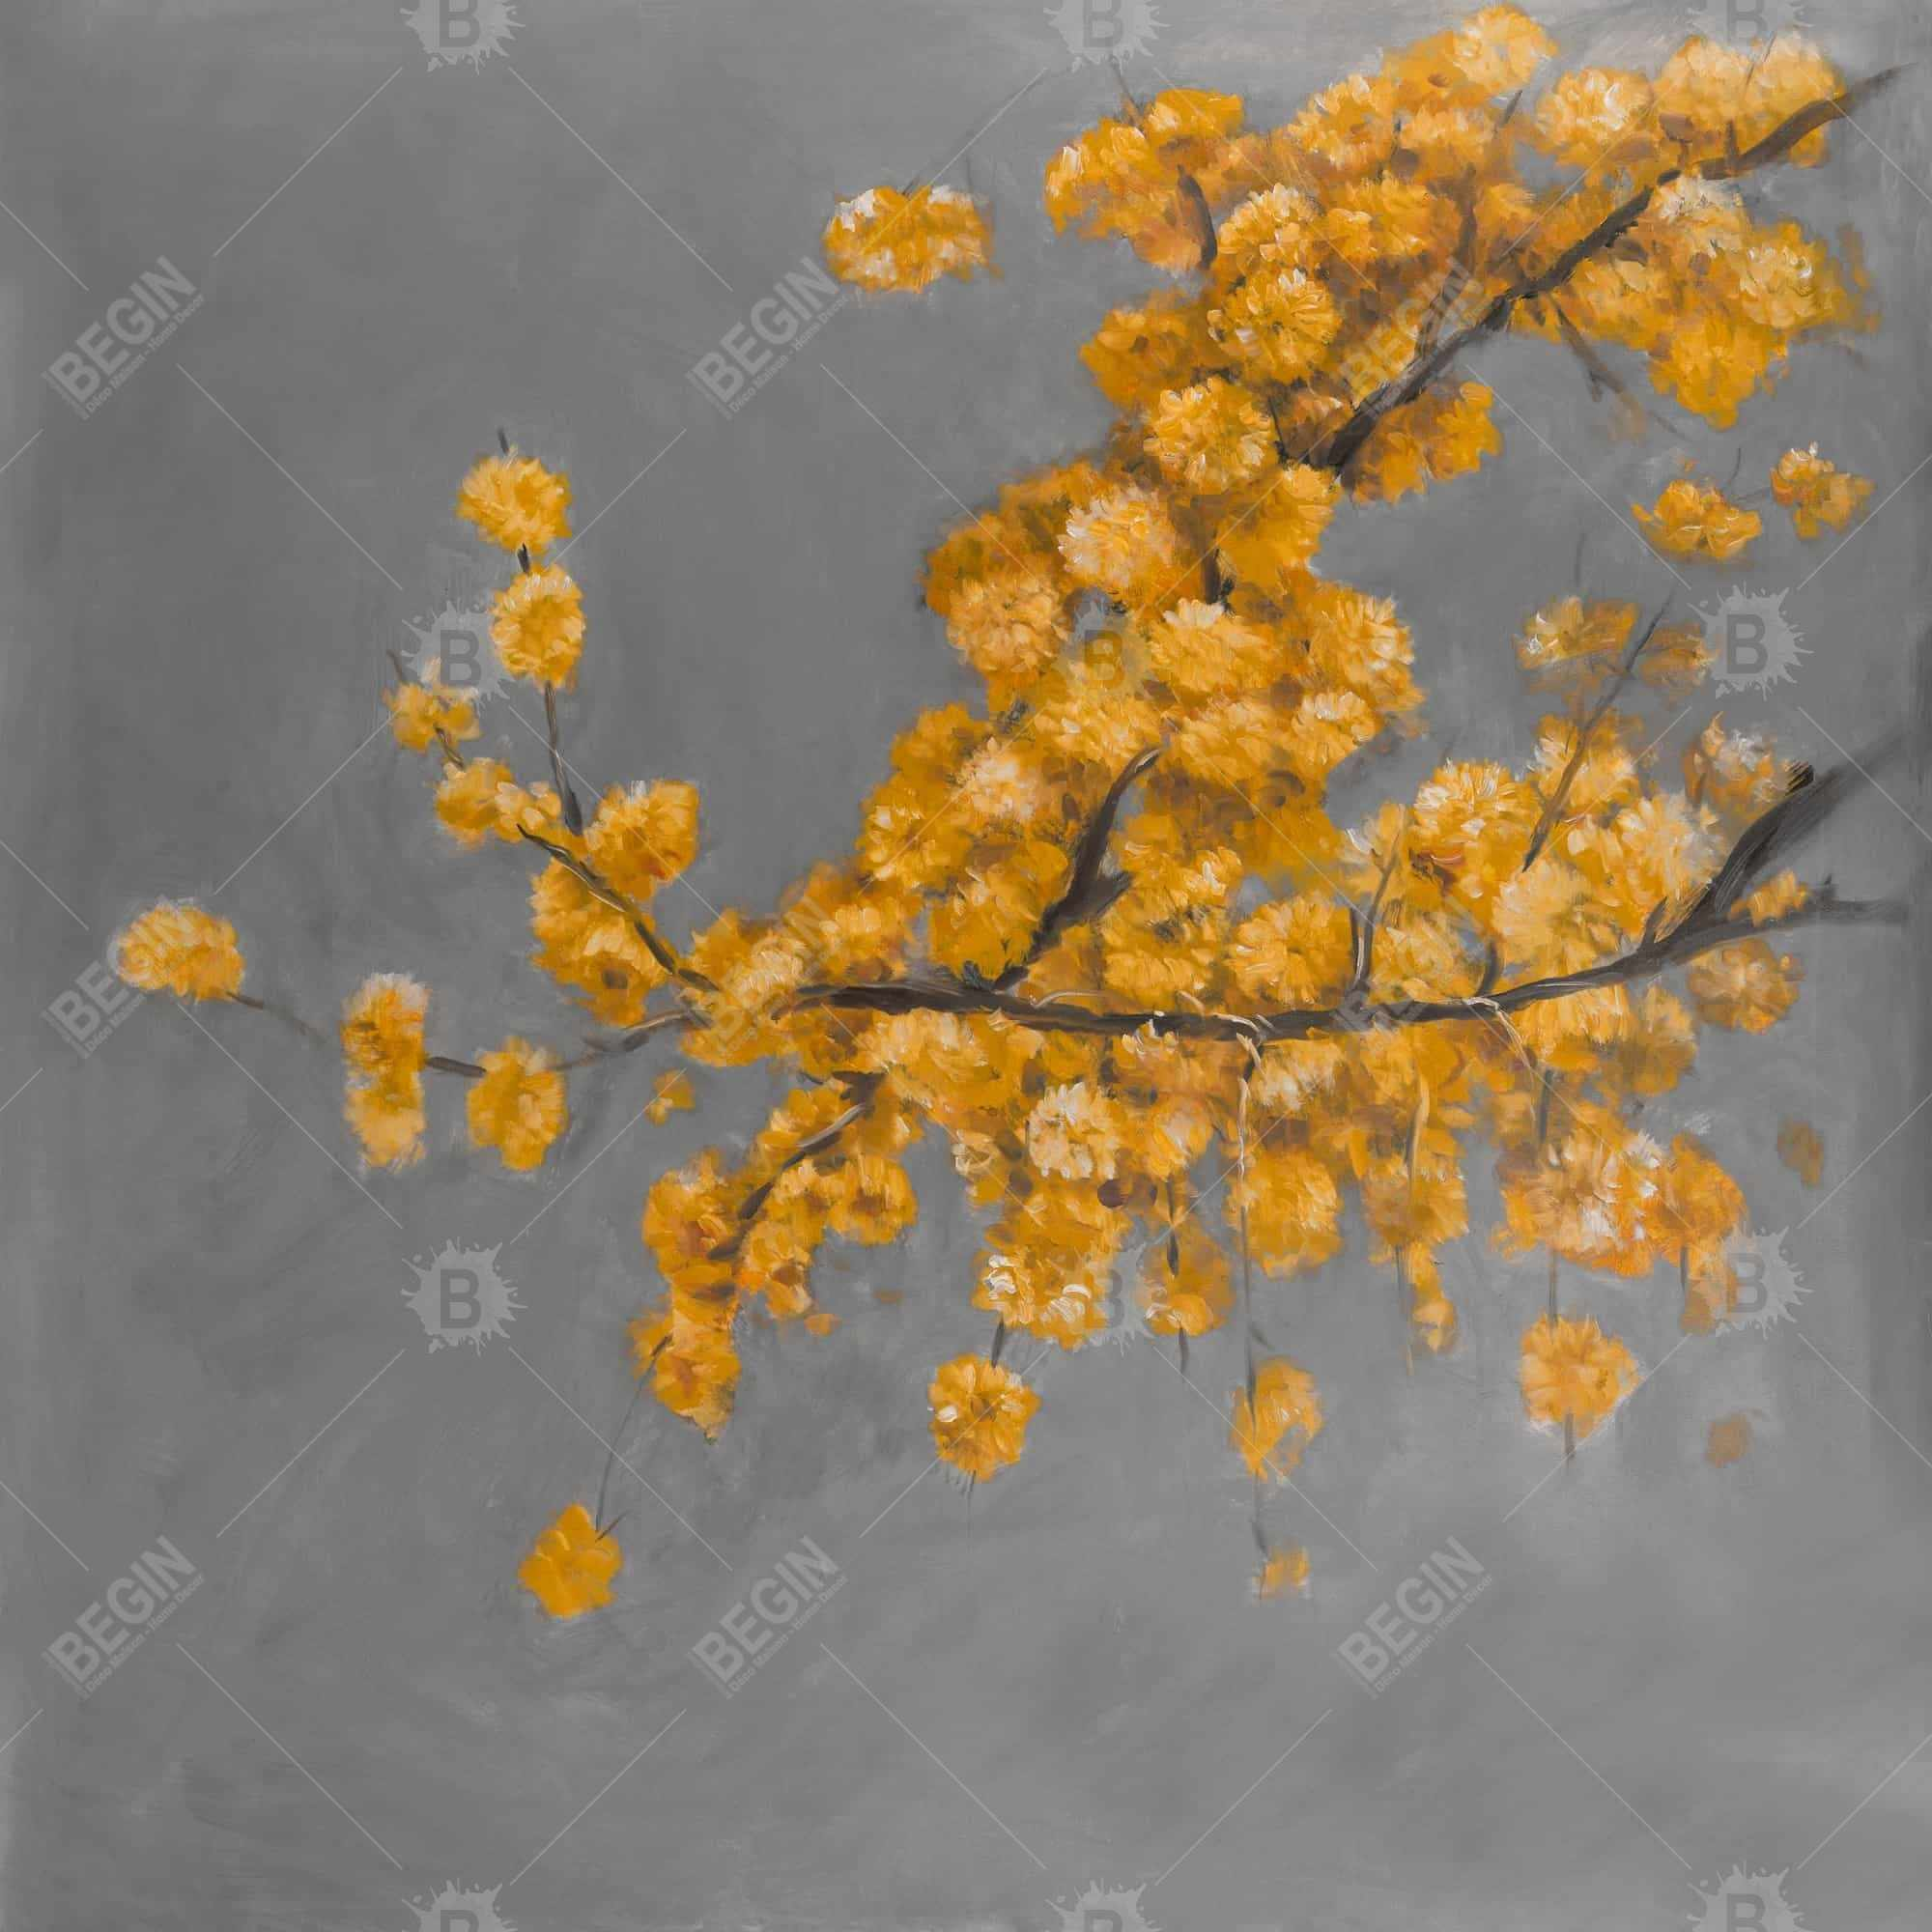 Golden wattle plant with pugg ball flowers